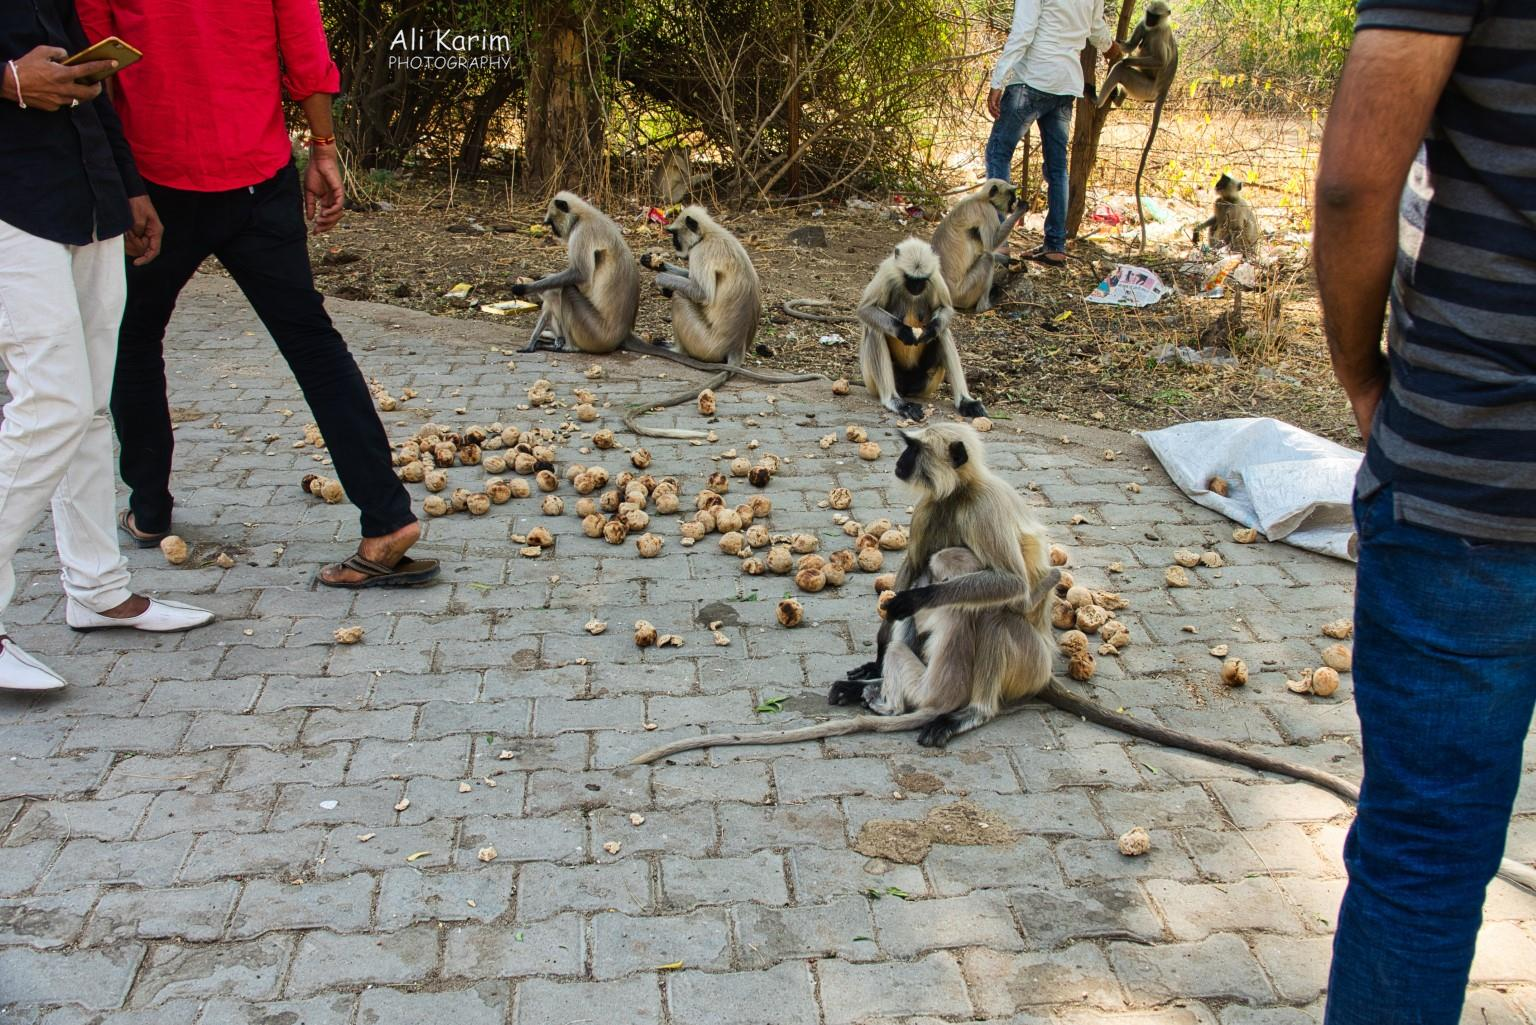 Leopards, Bera, Rajasthan Local wild monkeys begin fed Baati every afternoon by locals at the dam